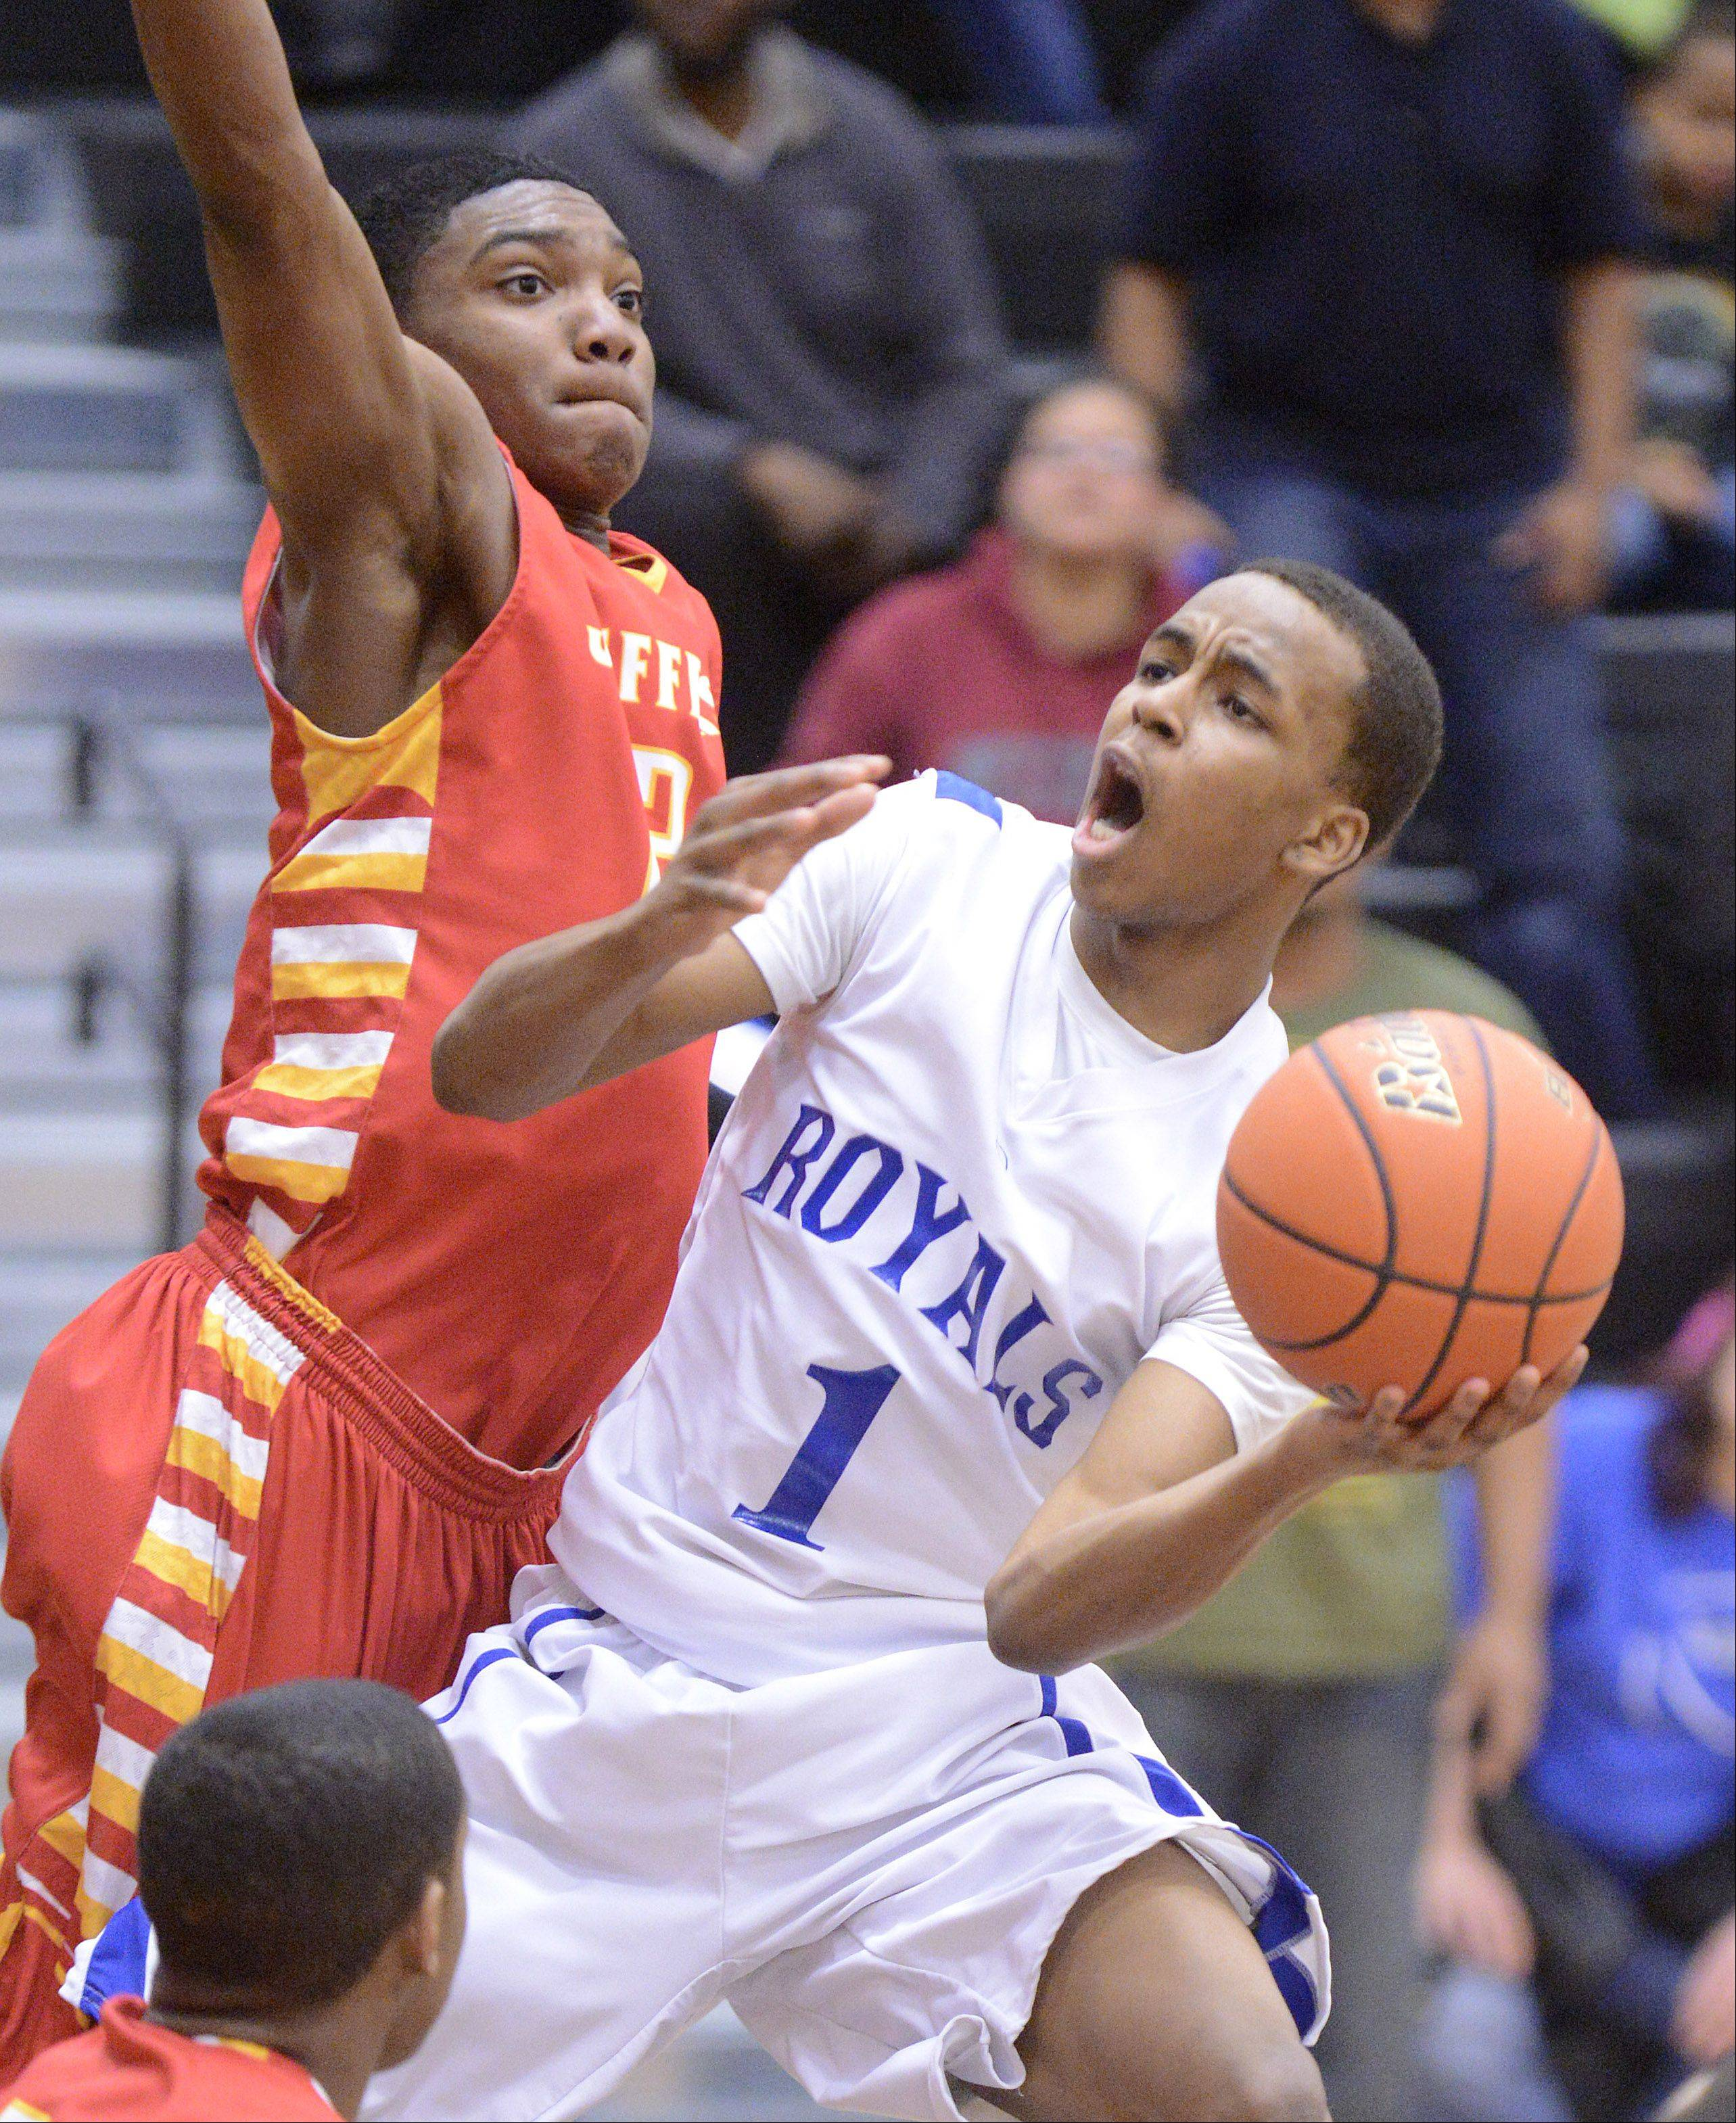 Larkin's Quantice Hunter shoots around Rockford Jefferson's Antonie Pittman in the third quarter .